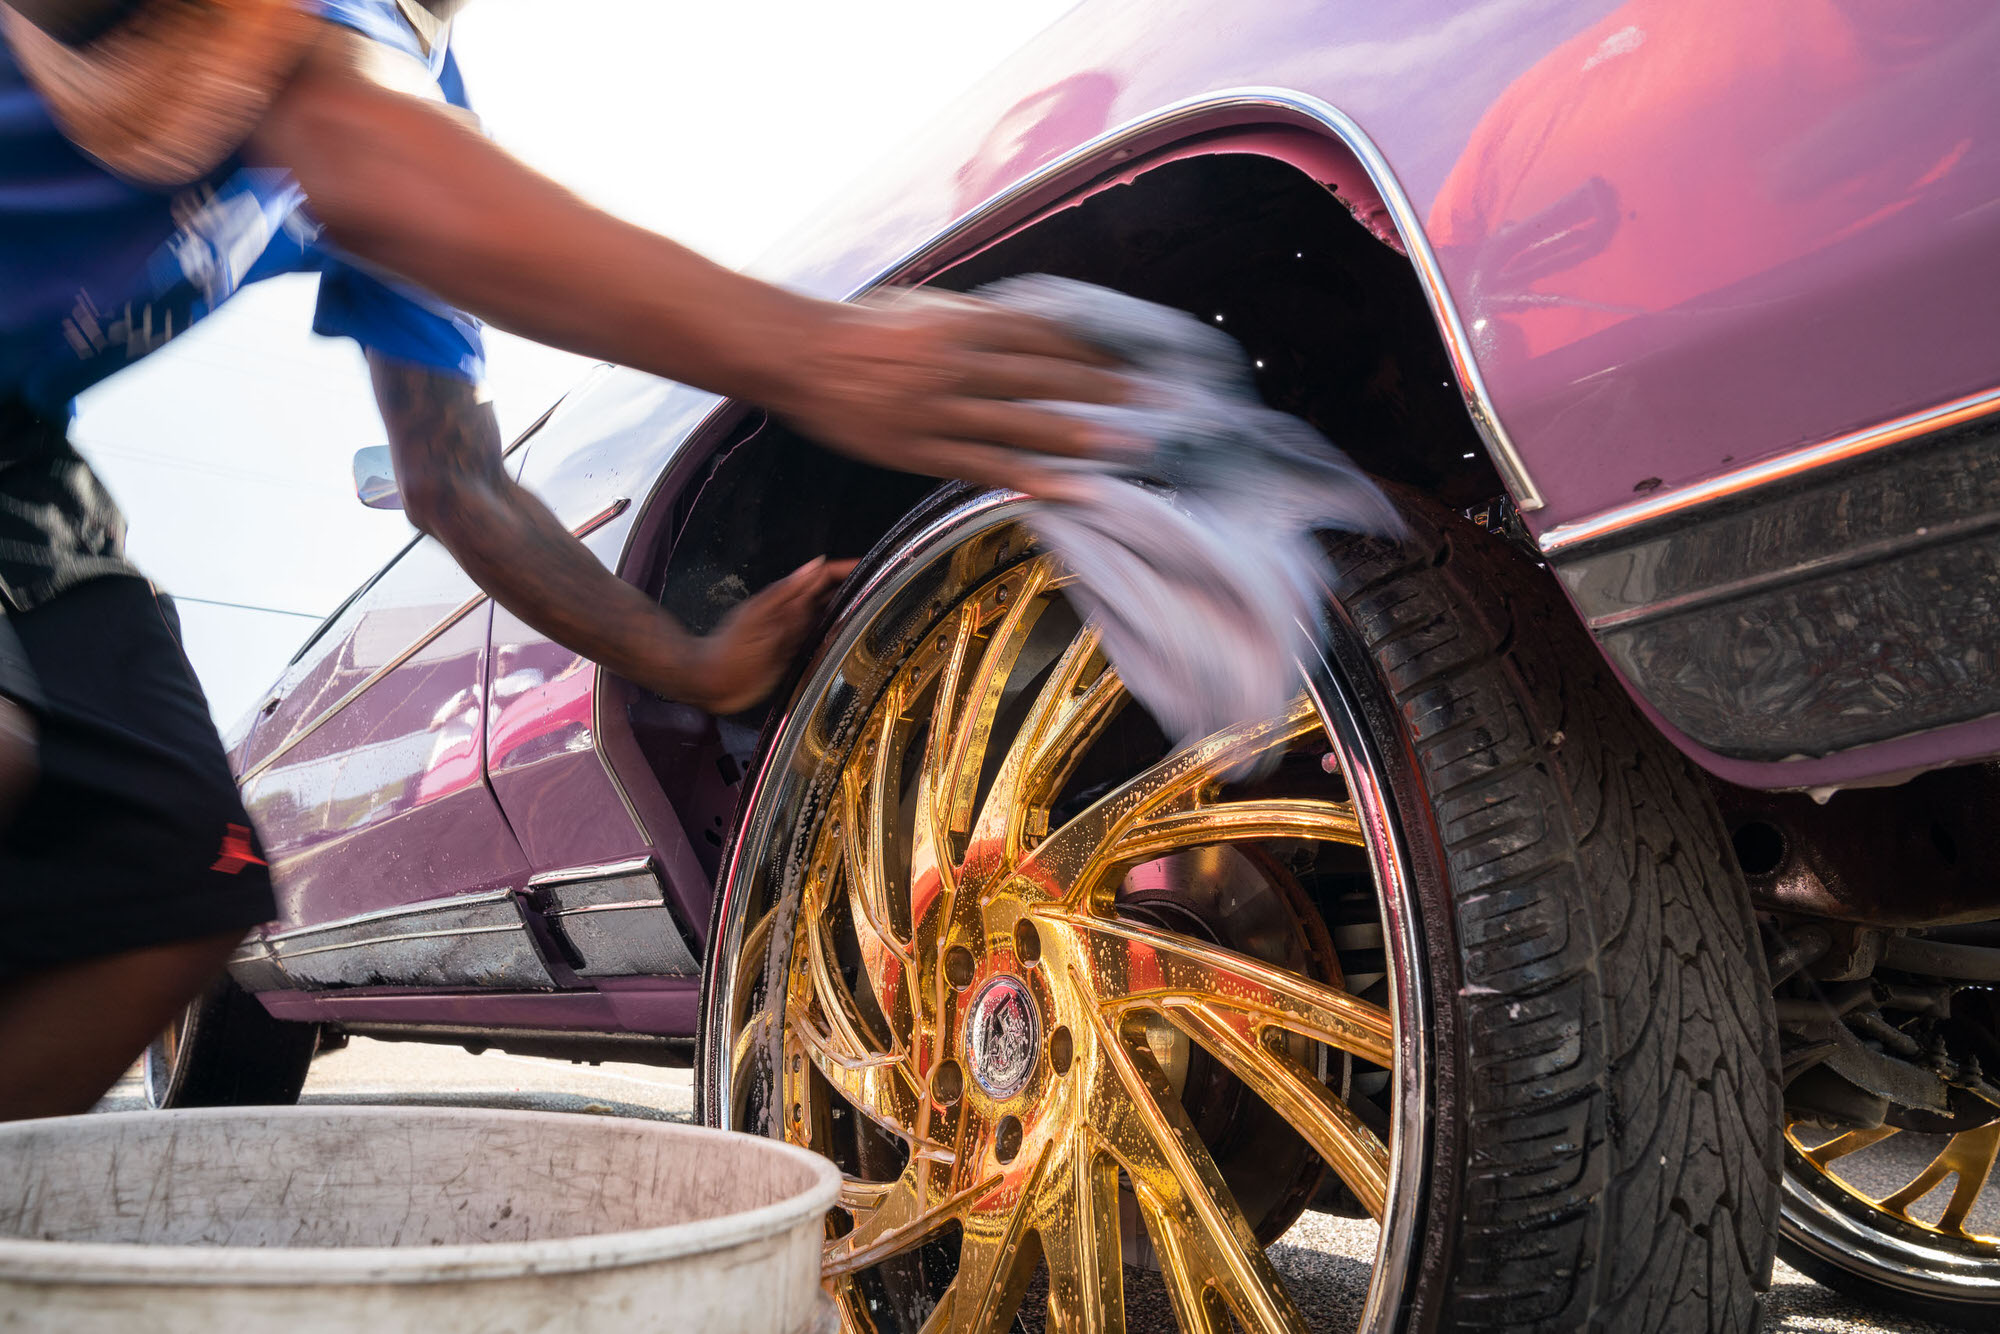 Washing wheels on a DONK